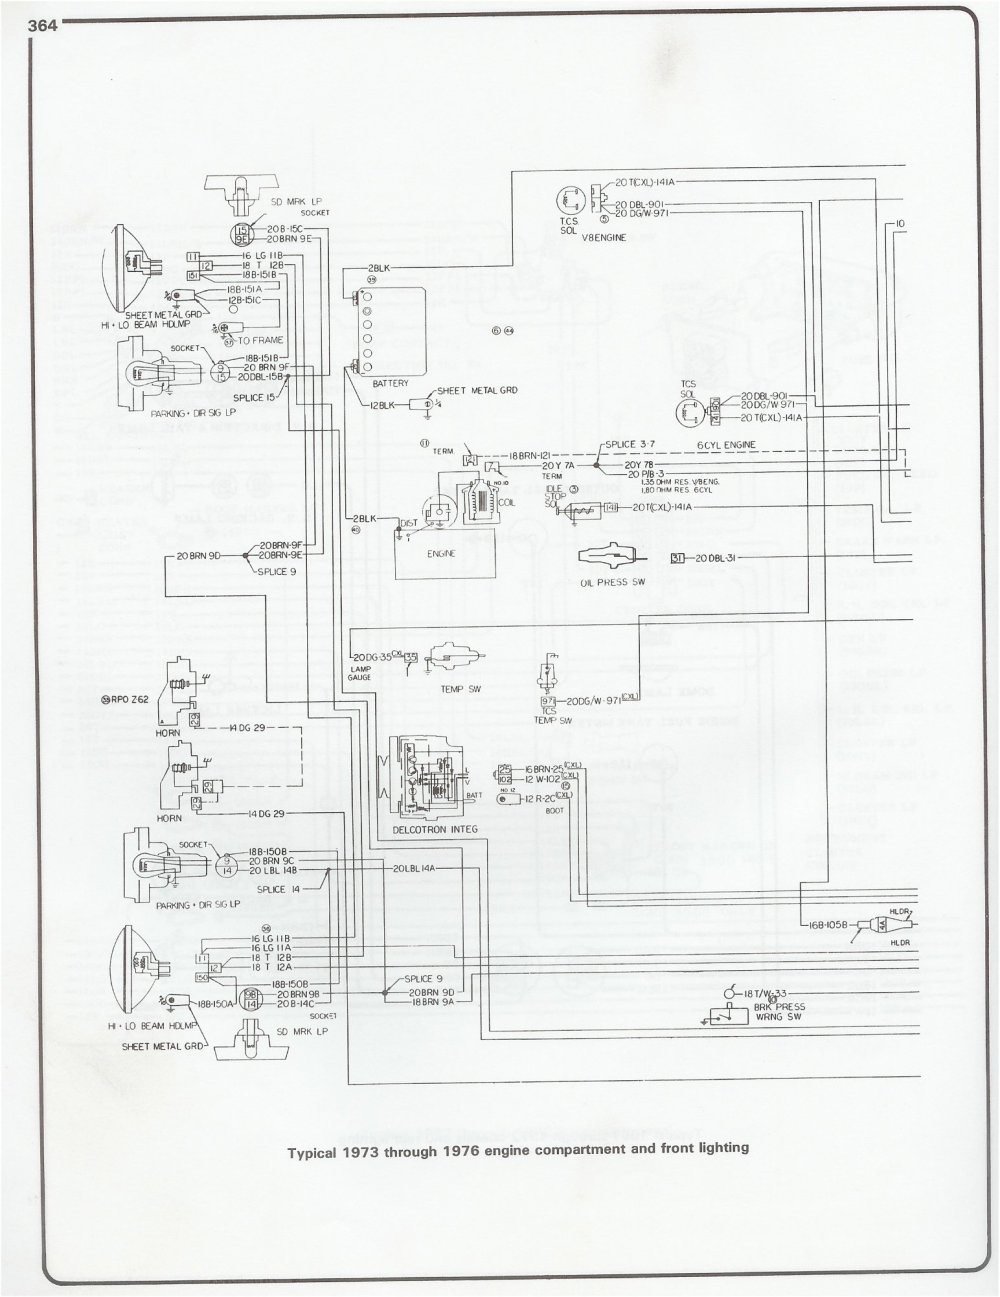 medium resolution of complete 73 87 wiring diagrams 73 76 engine and front lighting